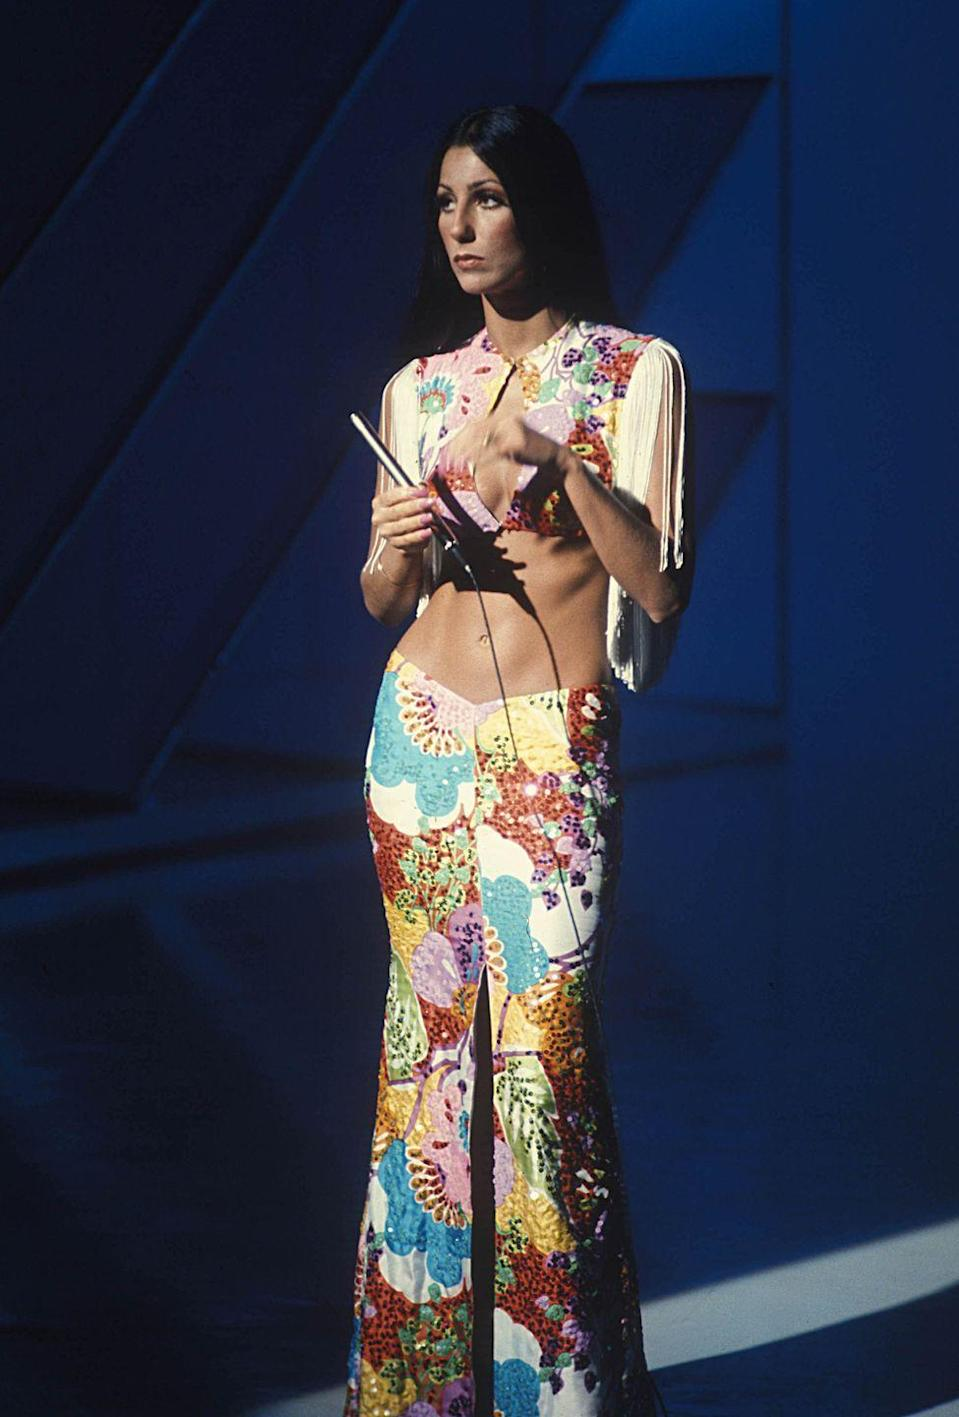 <p>Get your hippie-chic on à la Cher, in floral flares and a coordinating crop top. </p>